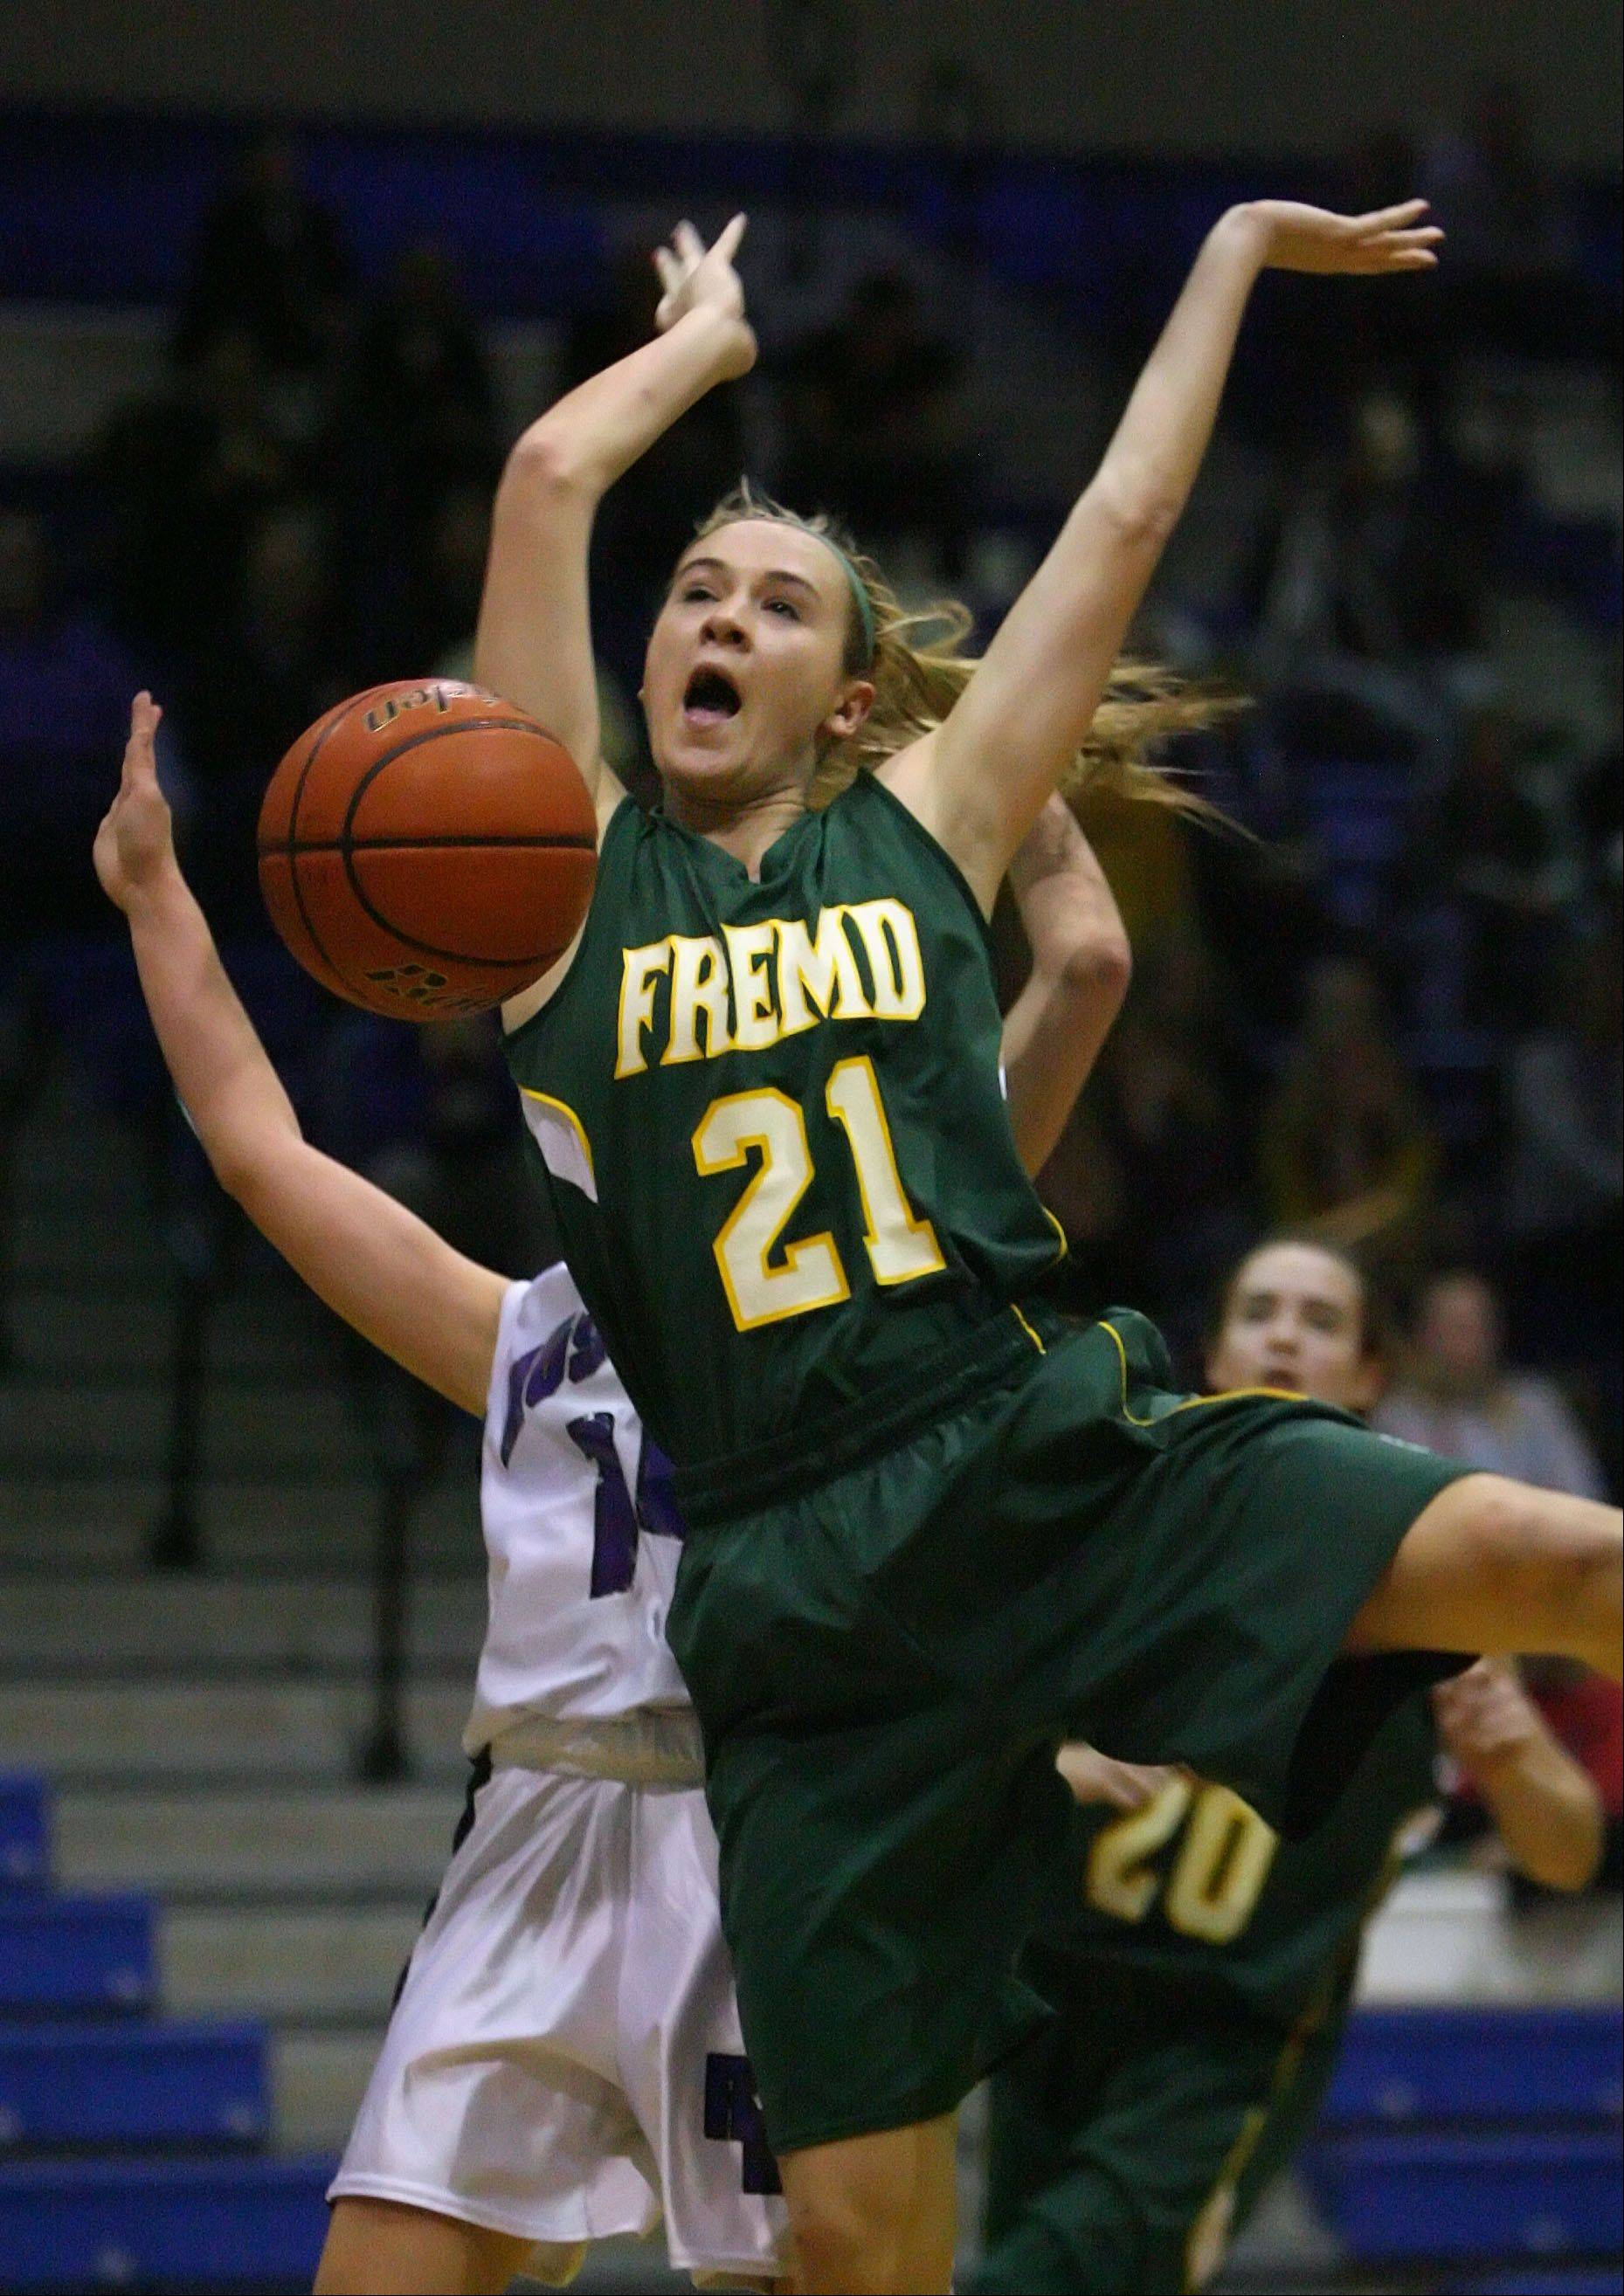 Fremd's Ashley McConnell gets the ball stripped by Rolling Meadows' Sami Kay as she drives to the hoop during their game Wednesday night at Lake Zurich High School.